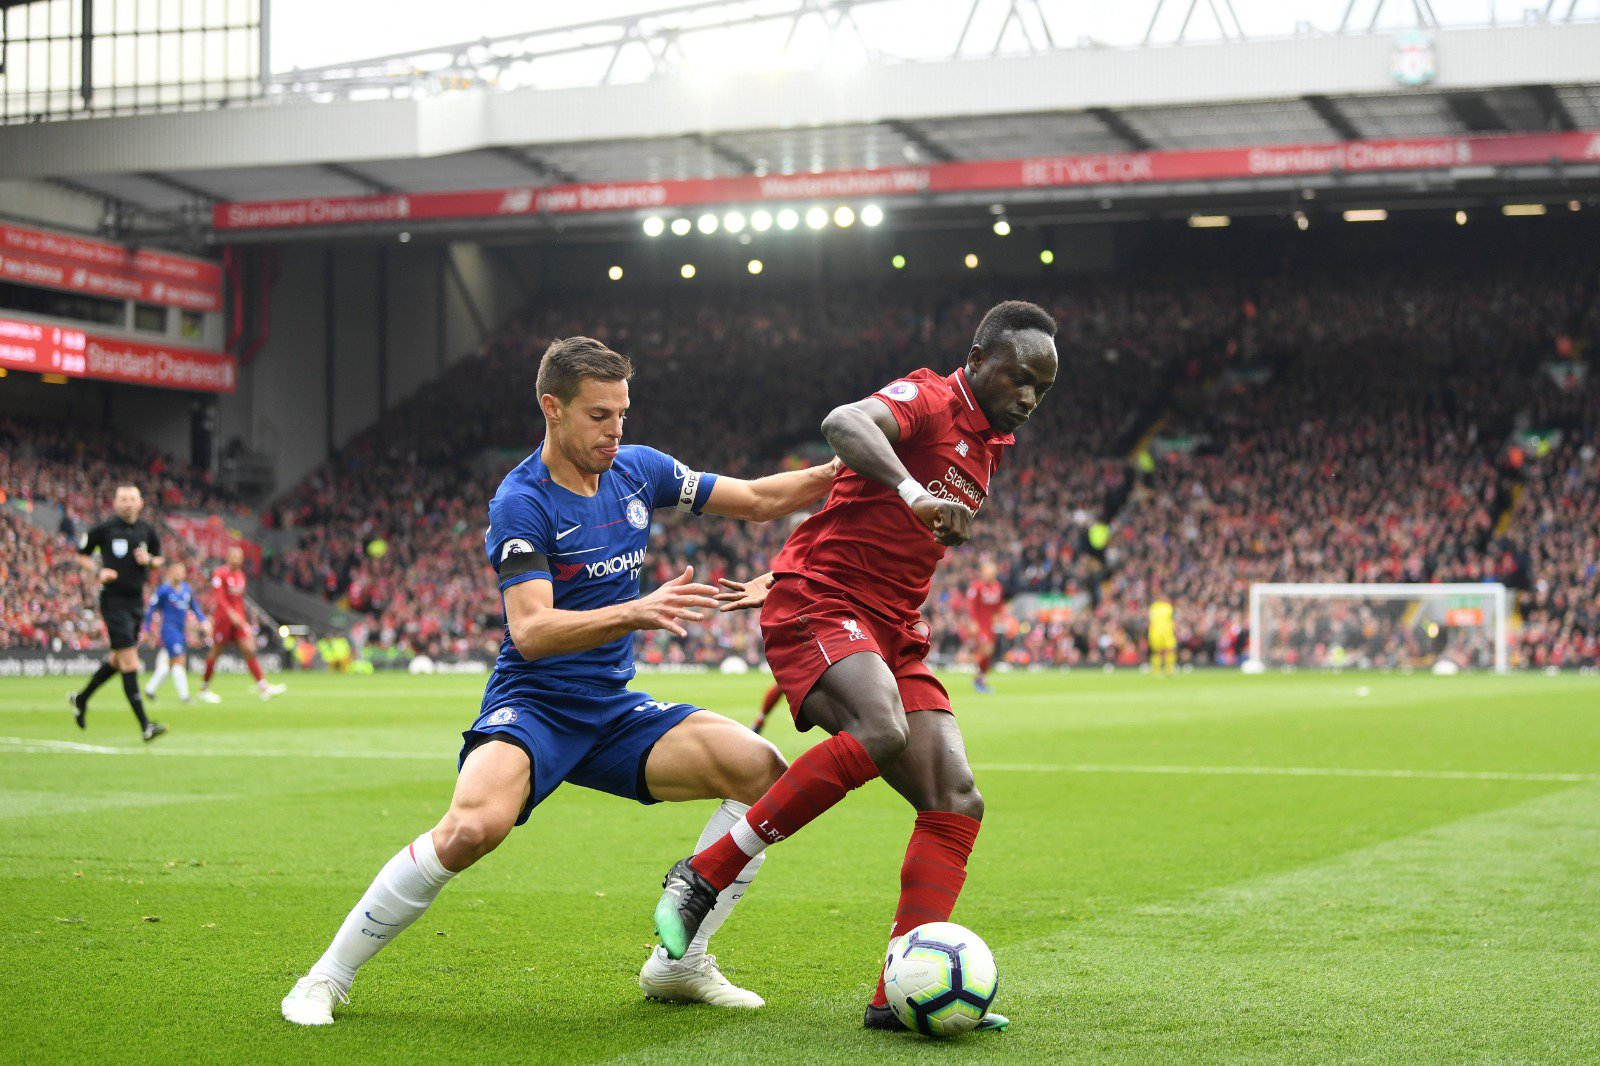 Liverpool Edge Chelsea At Anfield To Regain EPL Top Spot